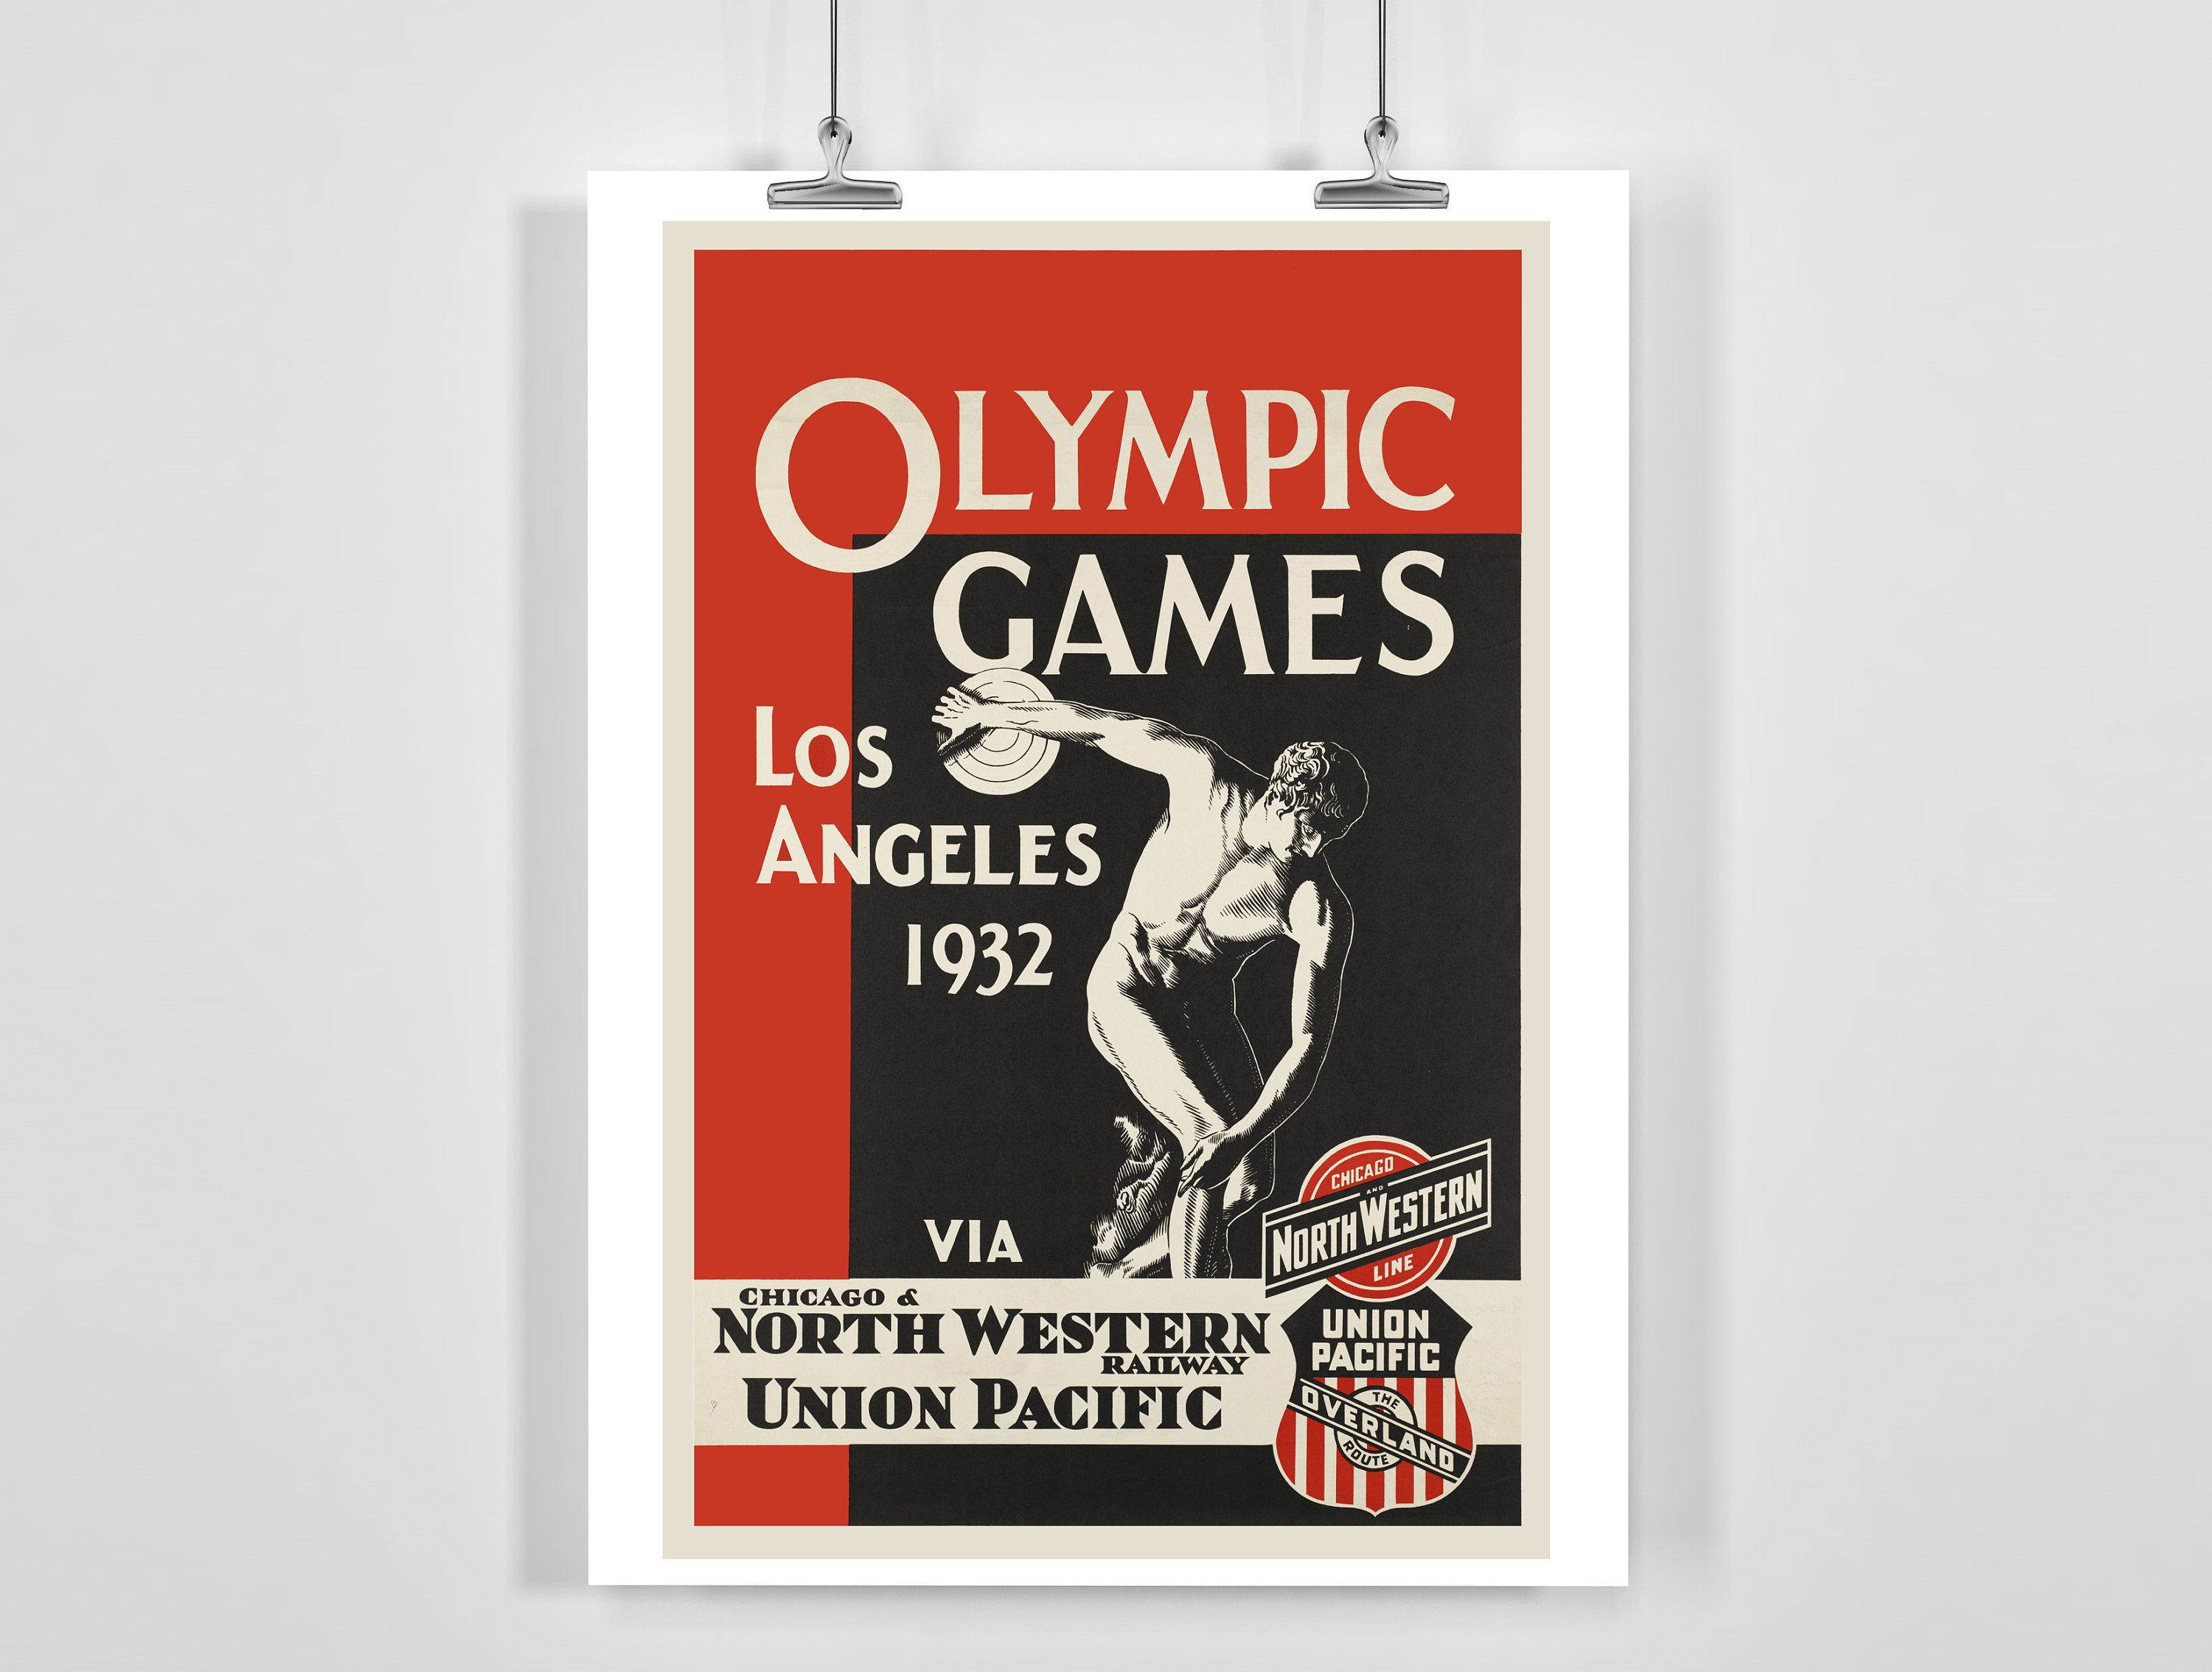 Los Angeles Olympic Games 1932 Vintage Sport Poster A4 Framed Unframed In 2020 Sport Poster Olympic Games Olympics